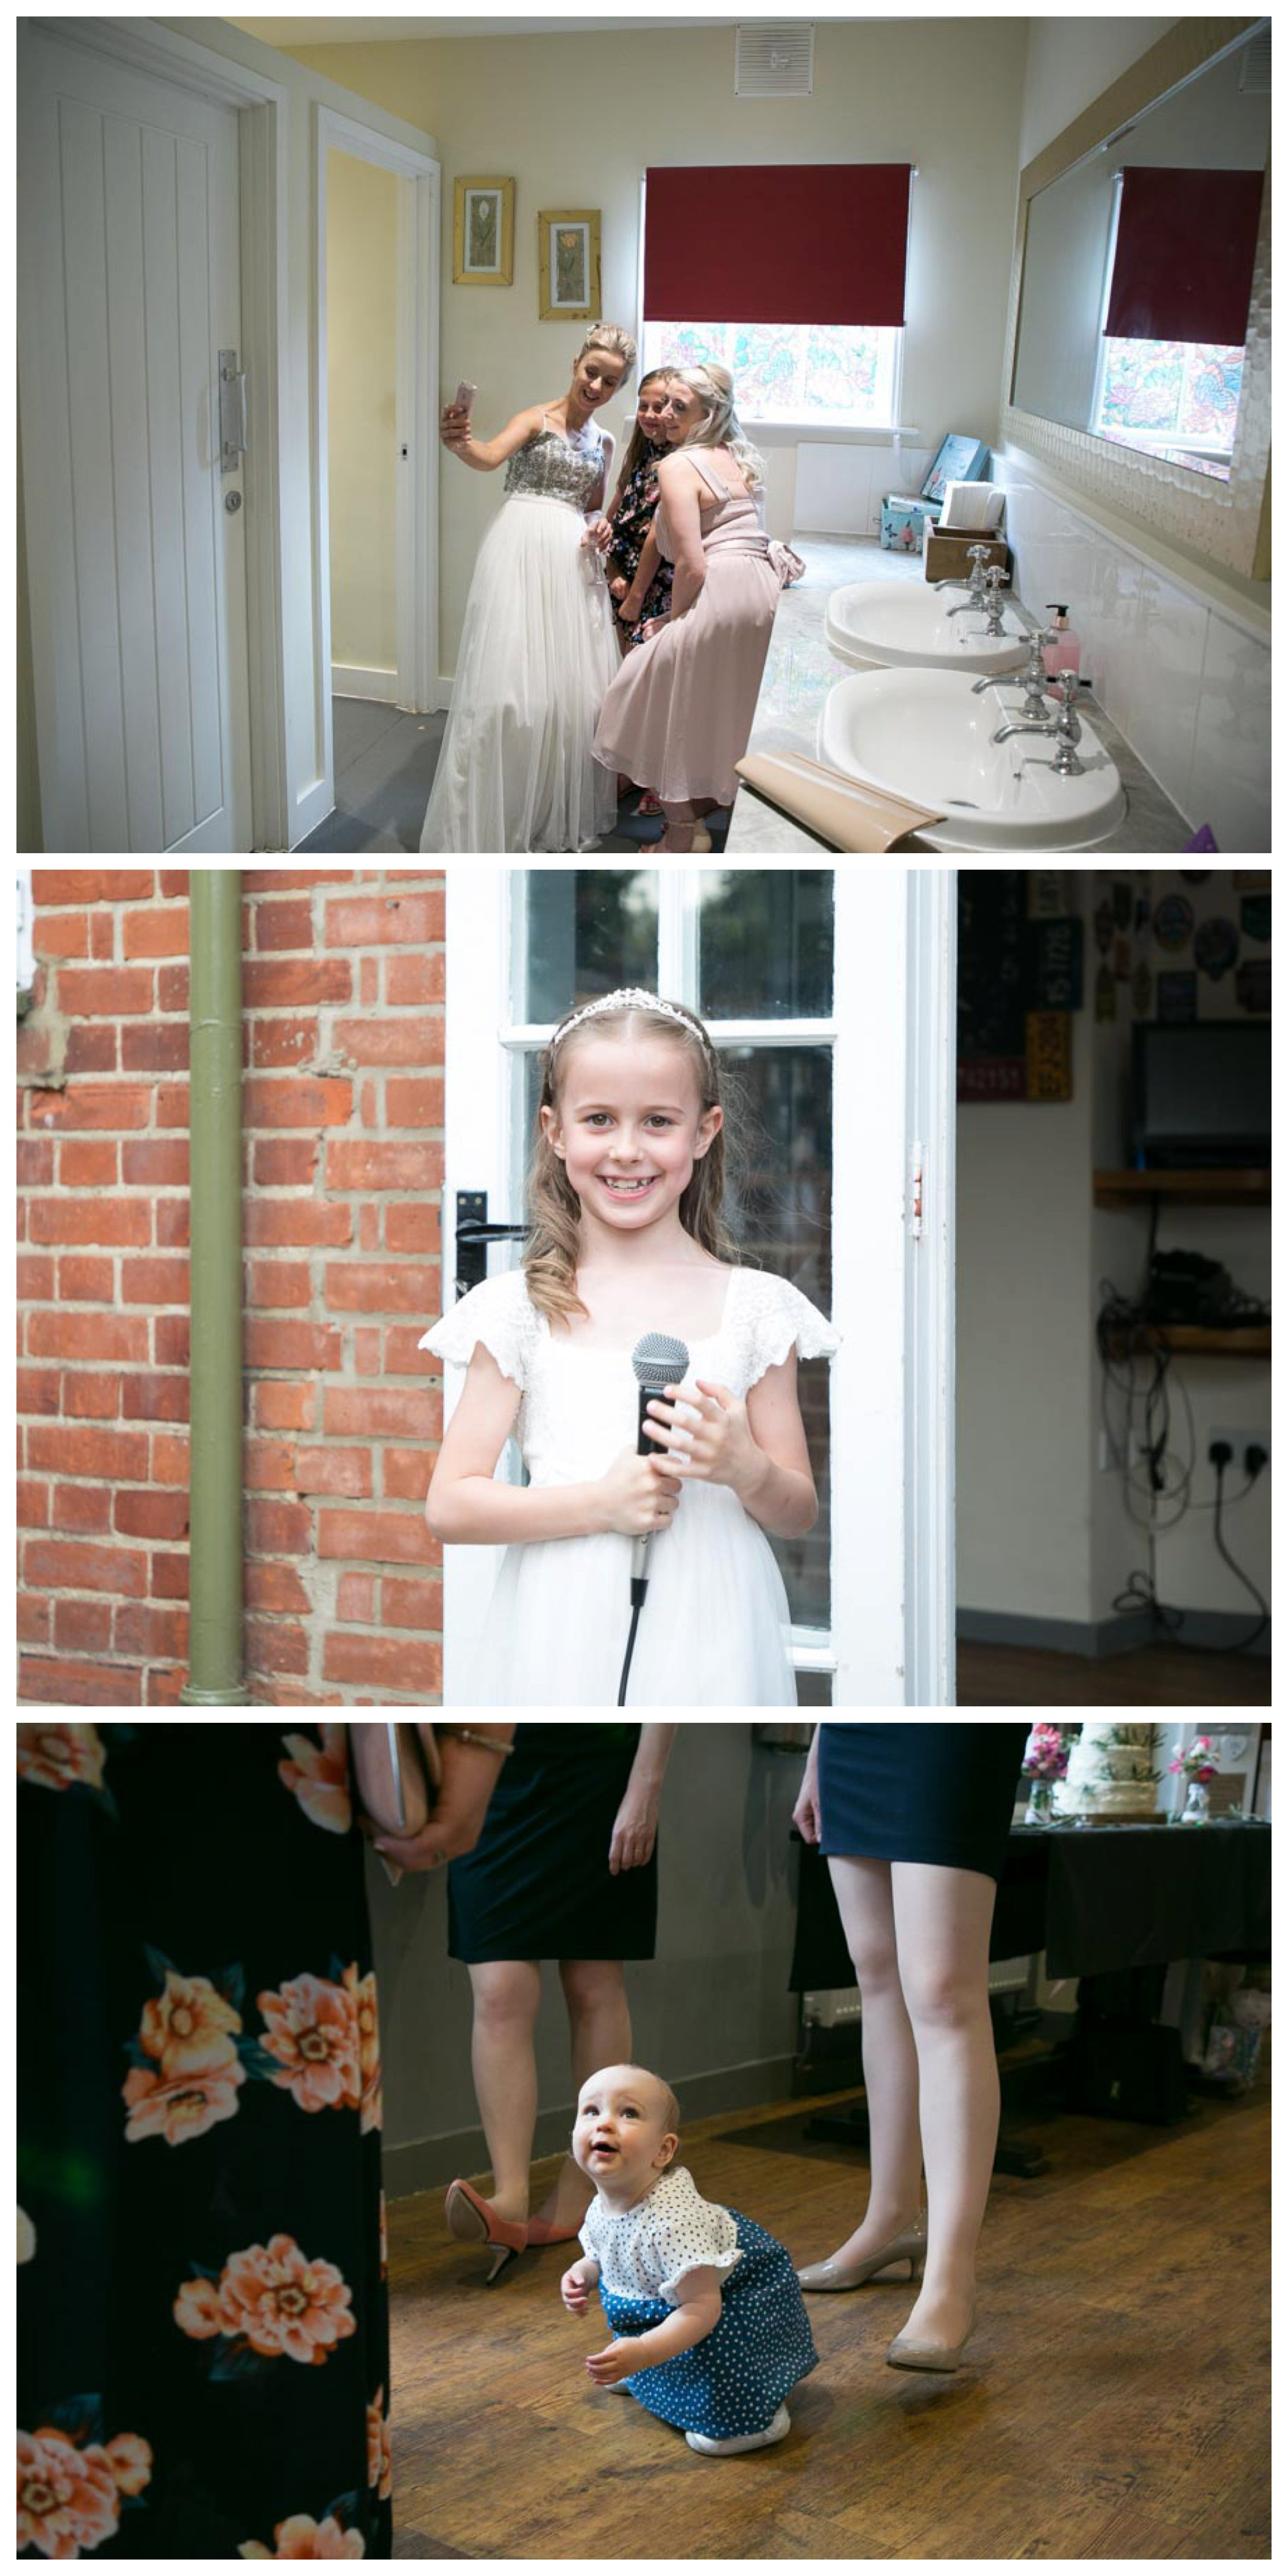 brides selfie in pub toilet, flower girlwith microphone, toddler near adults feet